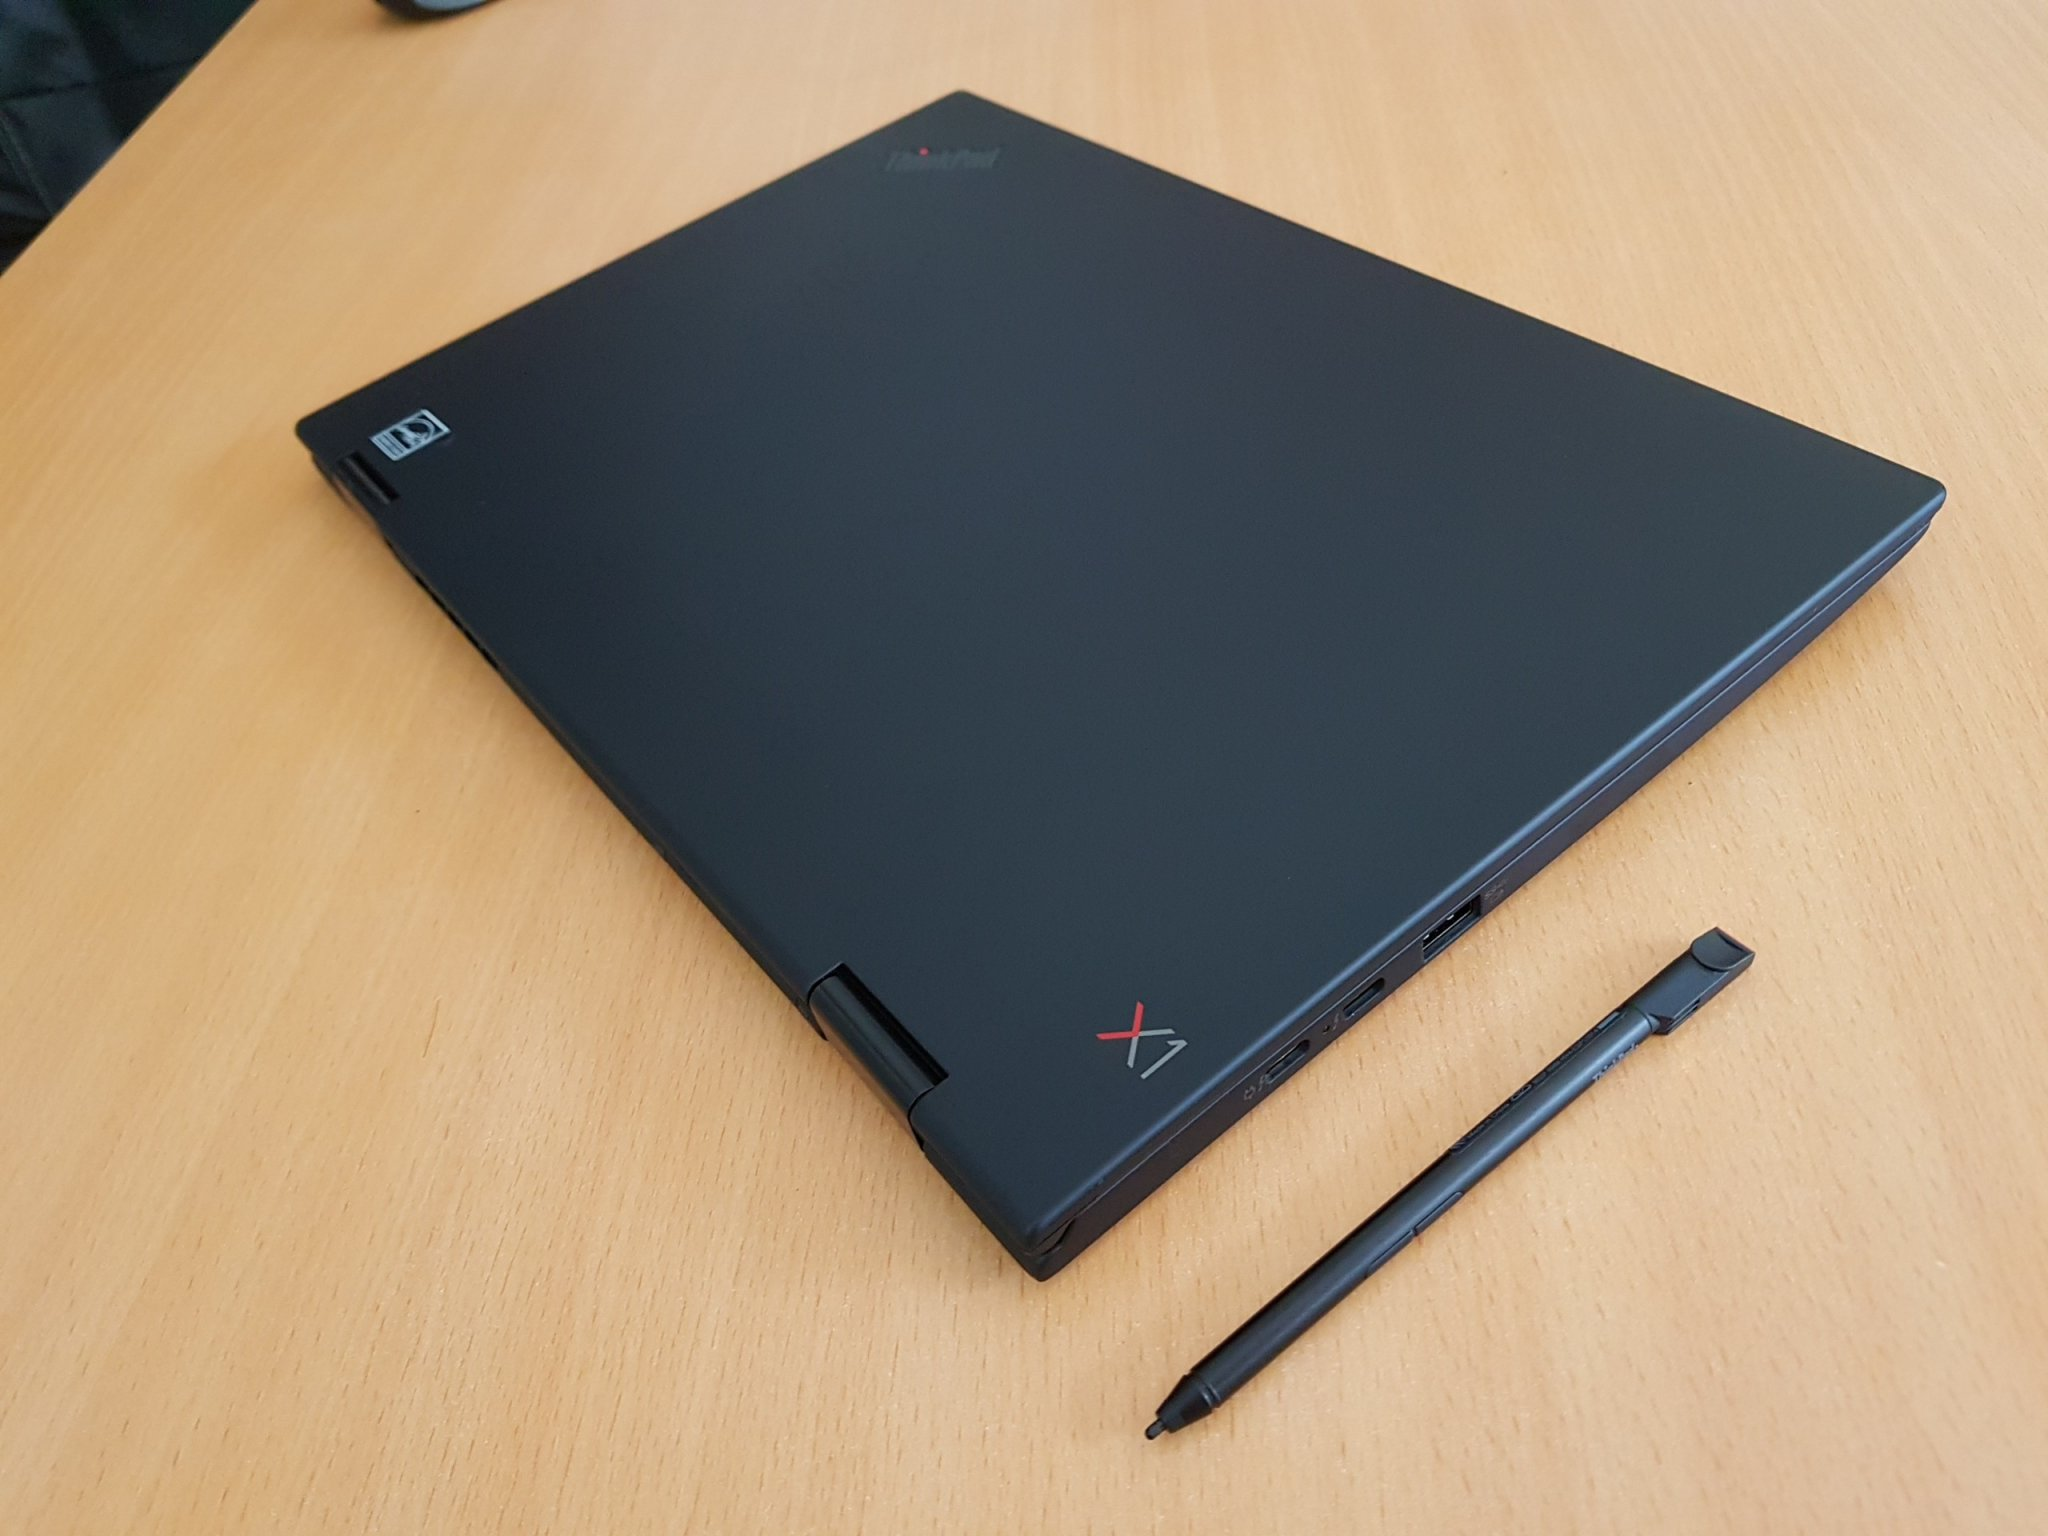 Thinkpad X1 Yoga Gen 3 Core i7 8650U 16GB SSD 512G